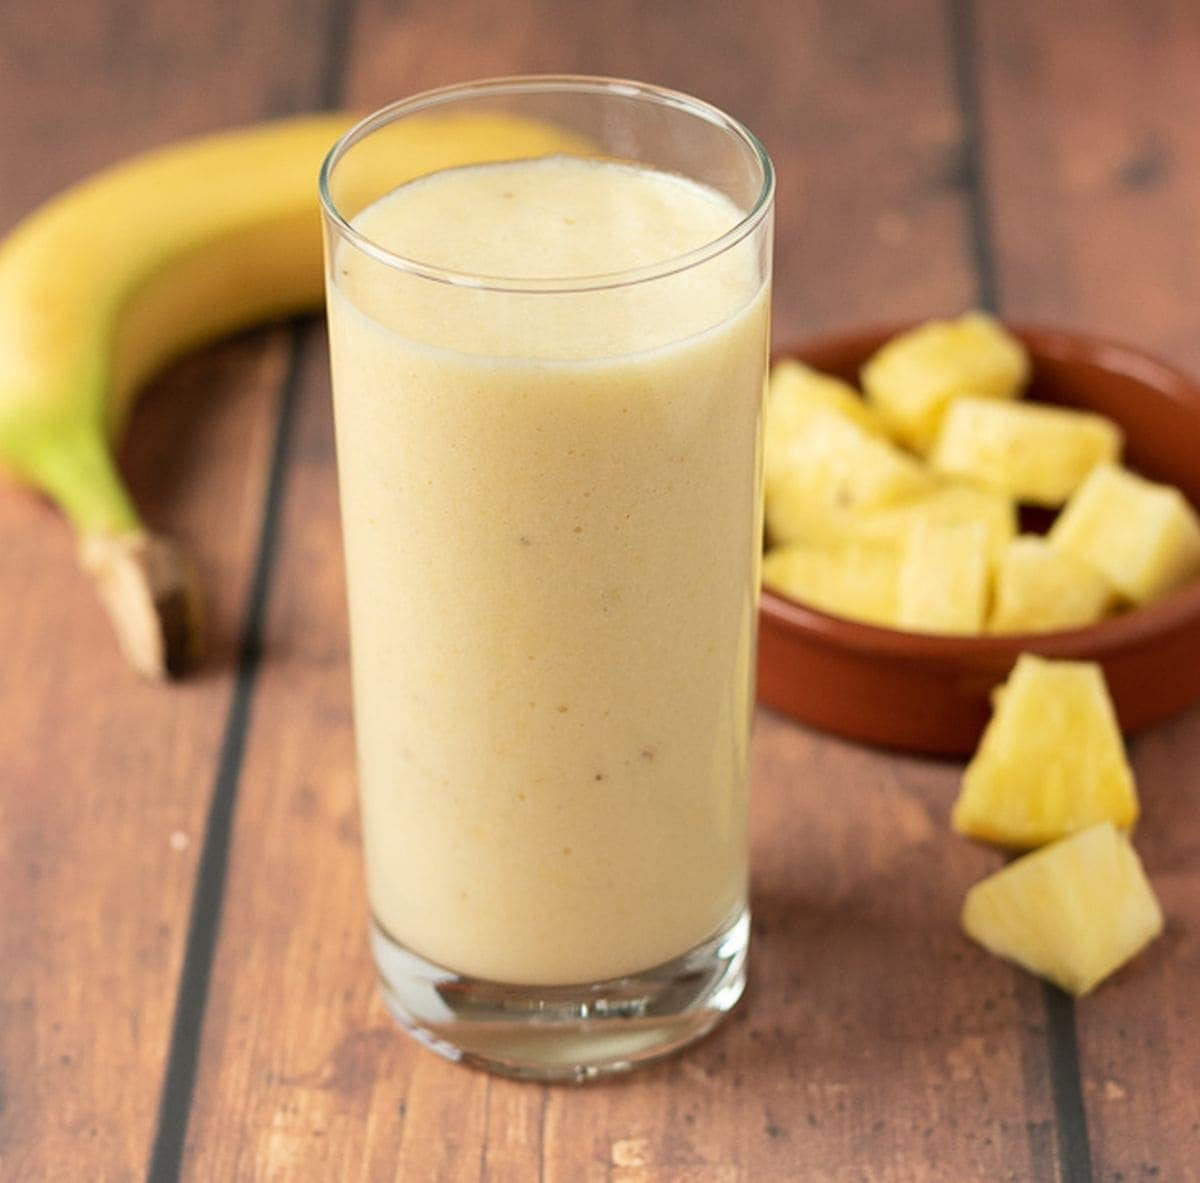 A glass of 4-ingredient tropical banana smoothie. A banana and a dish of pineapple cubes in the background.